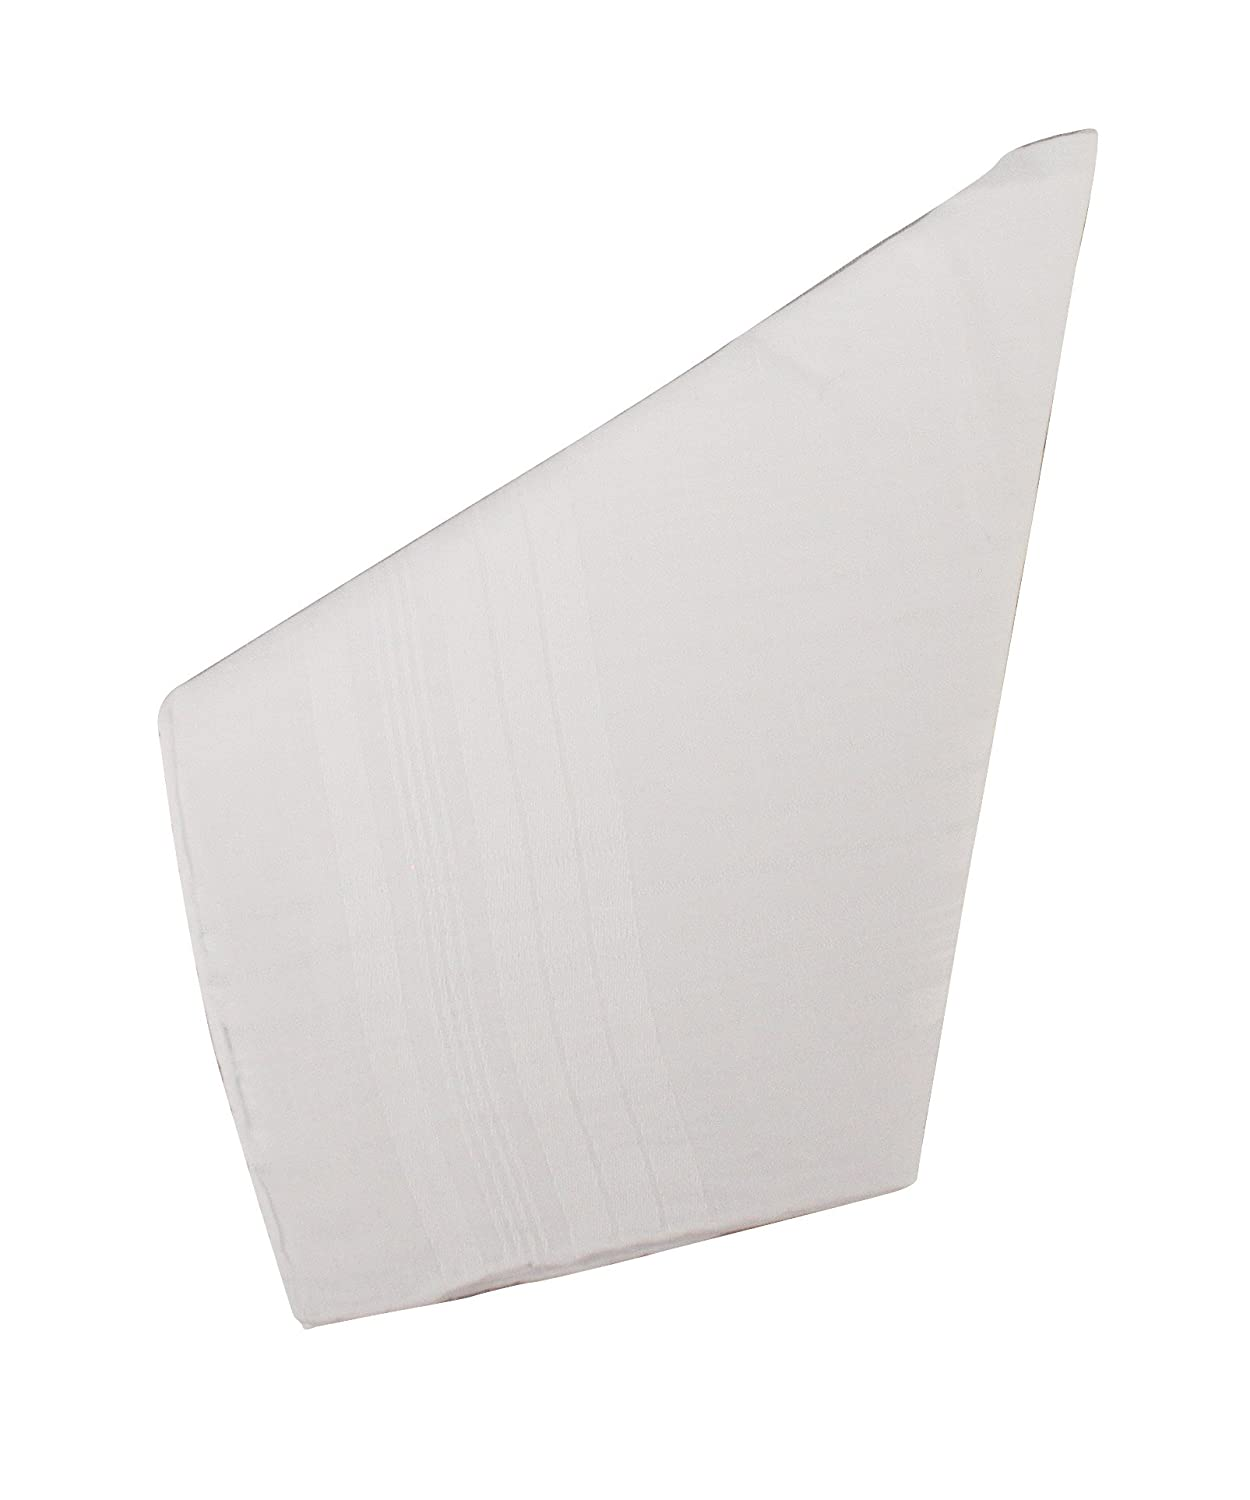 Weddingstar 8142 Gentleman's Plain Handkerchief, White Weddingstar Inc.